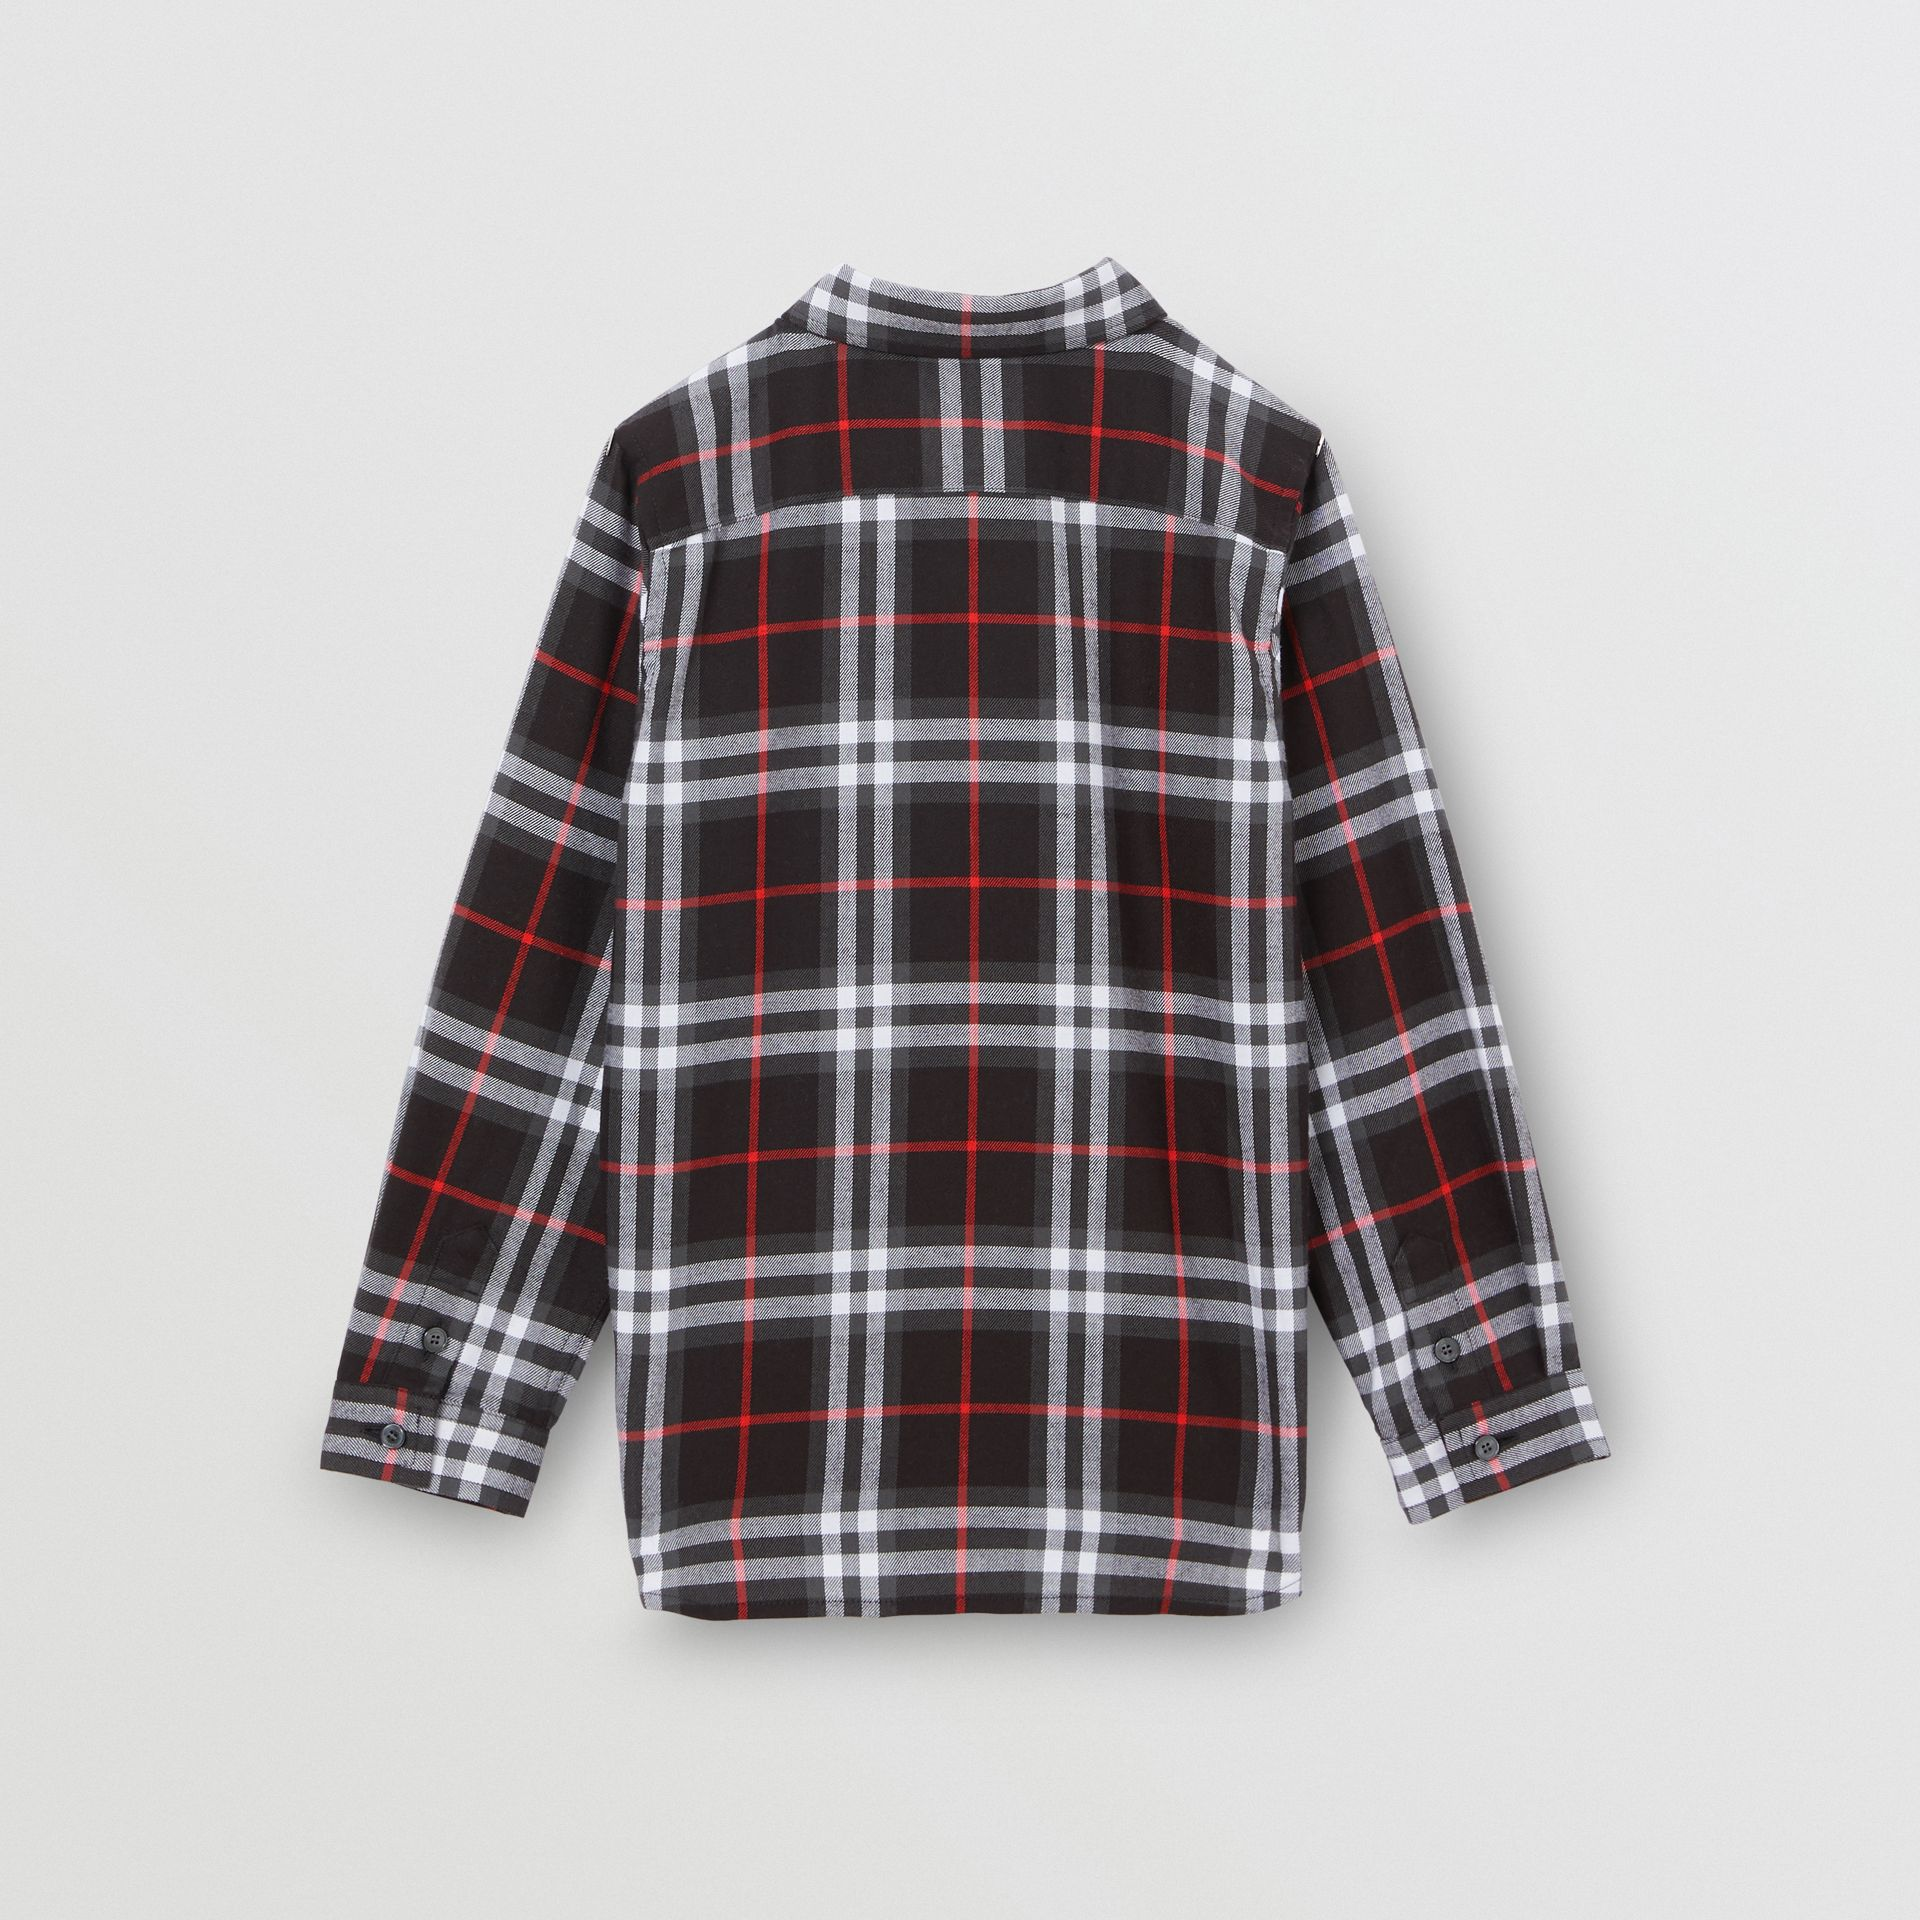 Vintage Check Cotton Flannel Shirt in Black | Burberry - gallery image 3